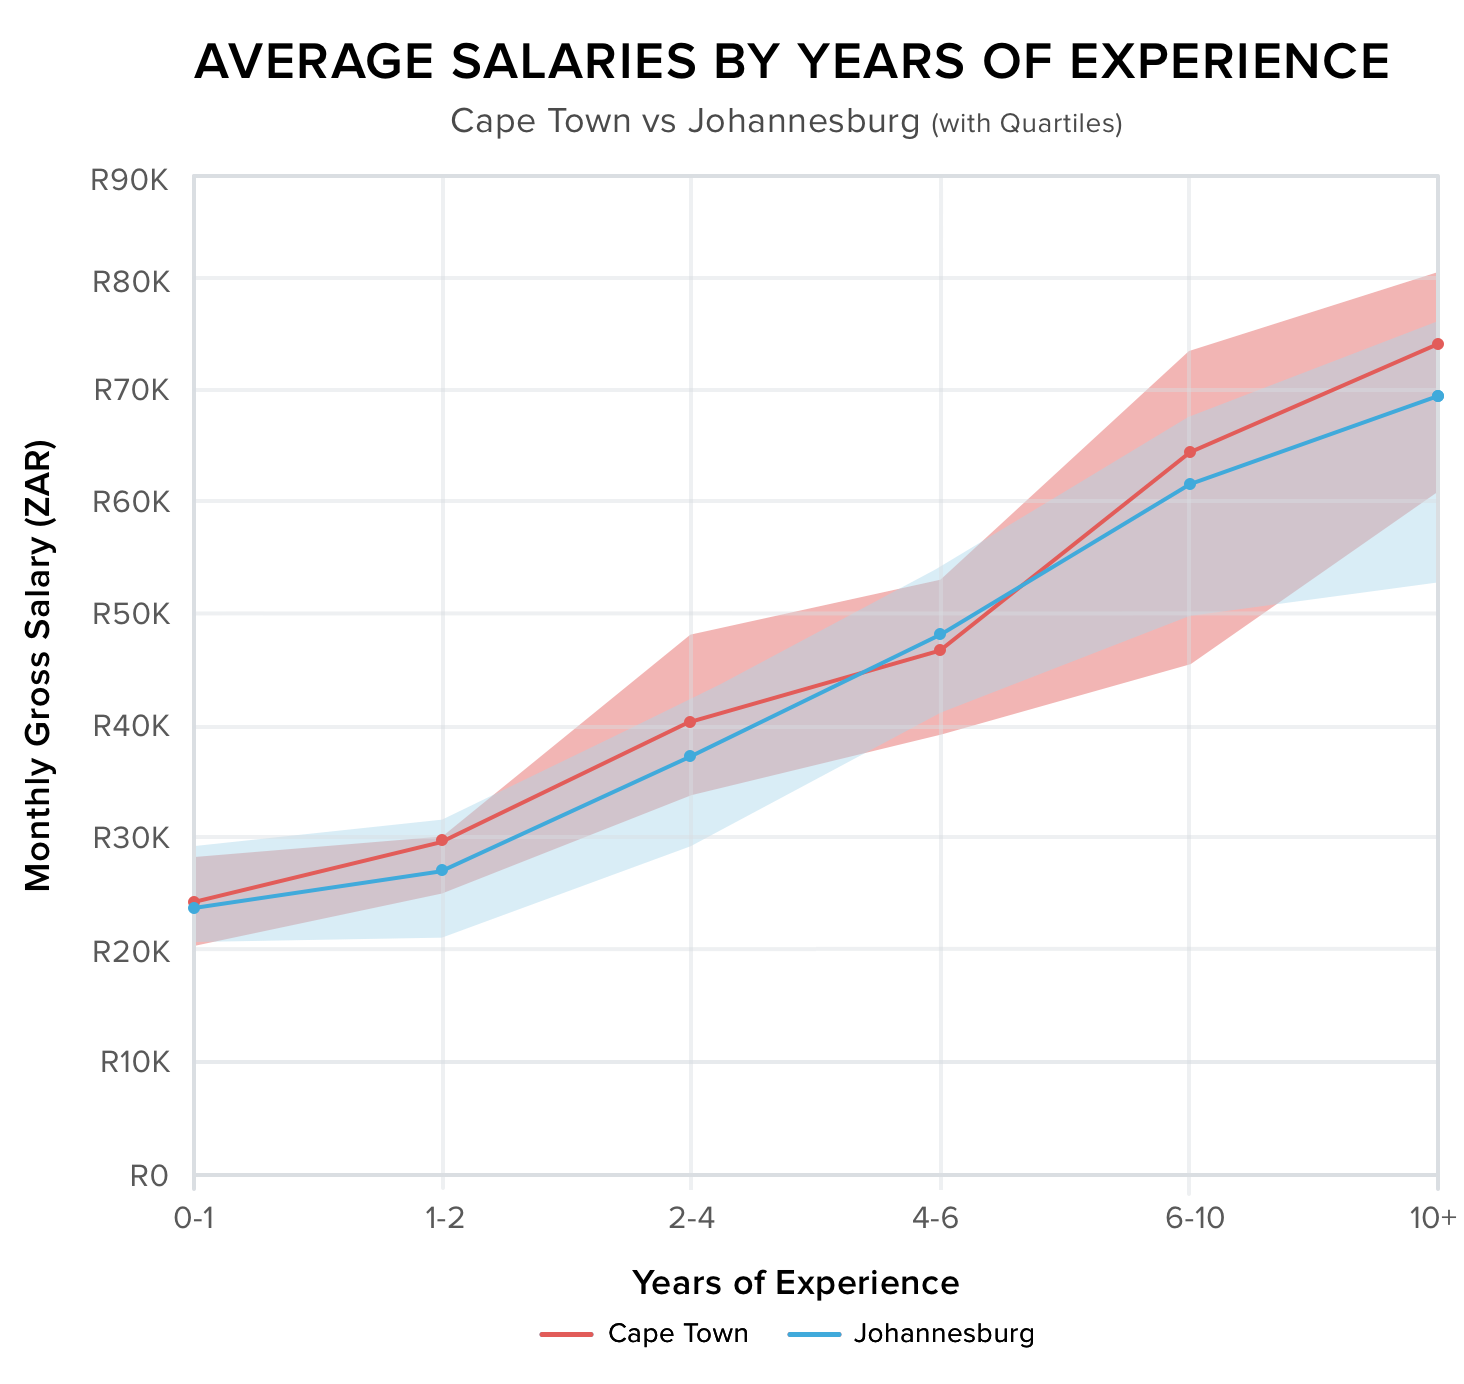 -Salaries-with-Confidence-intervals-Graph_@2x